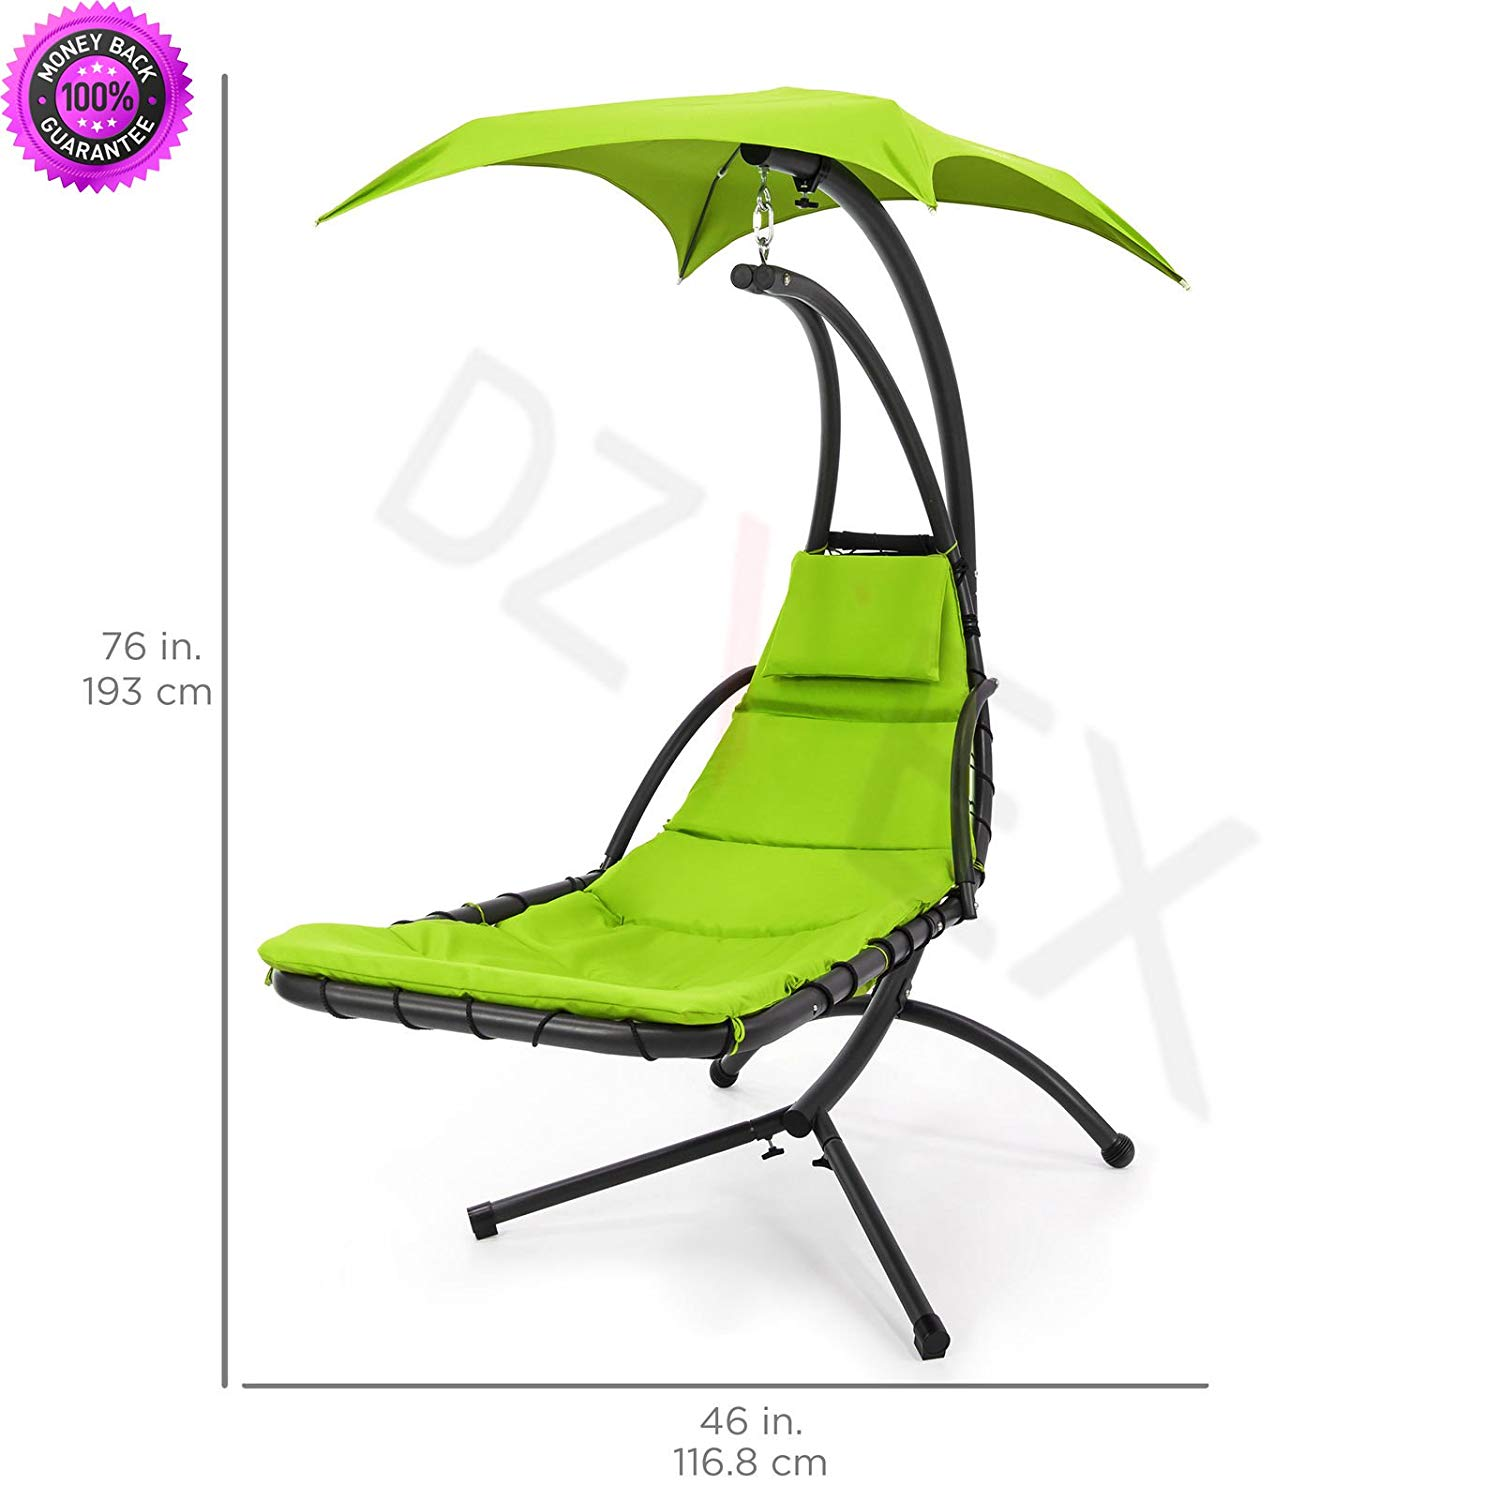 Buy Dzvex Hanging Chaise Lounger Chair Arc Stand Air Porch Swing